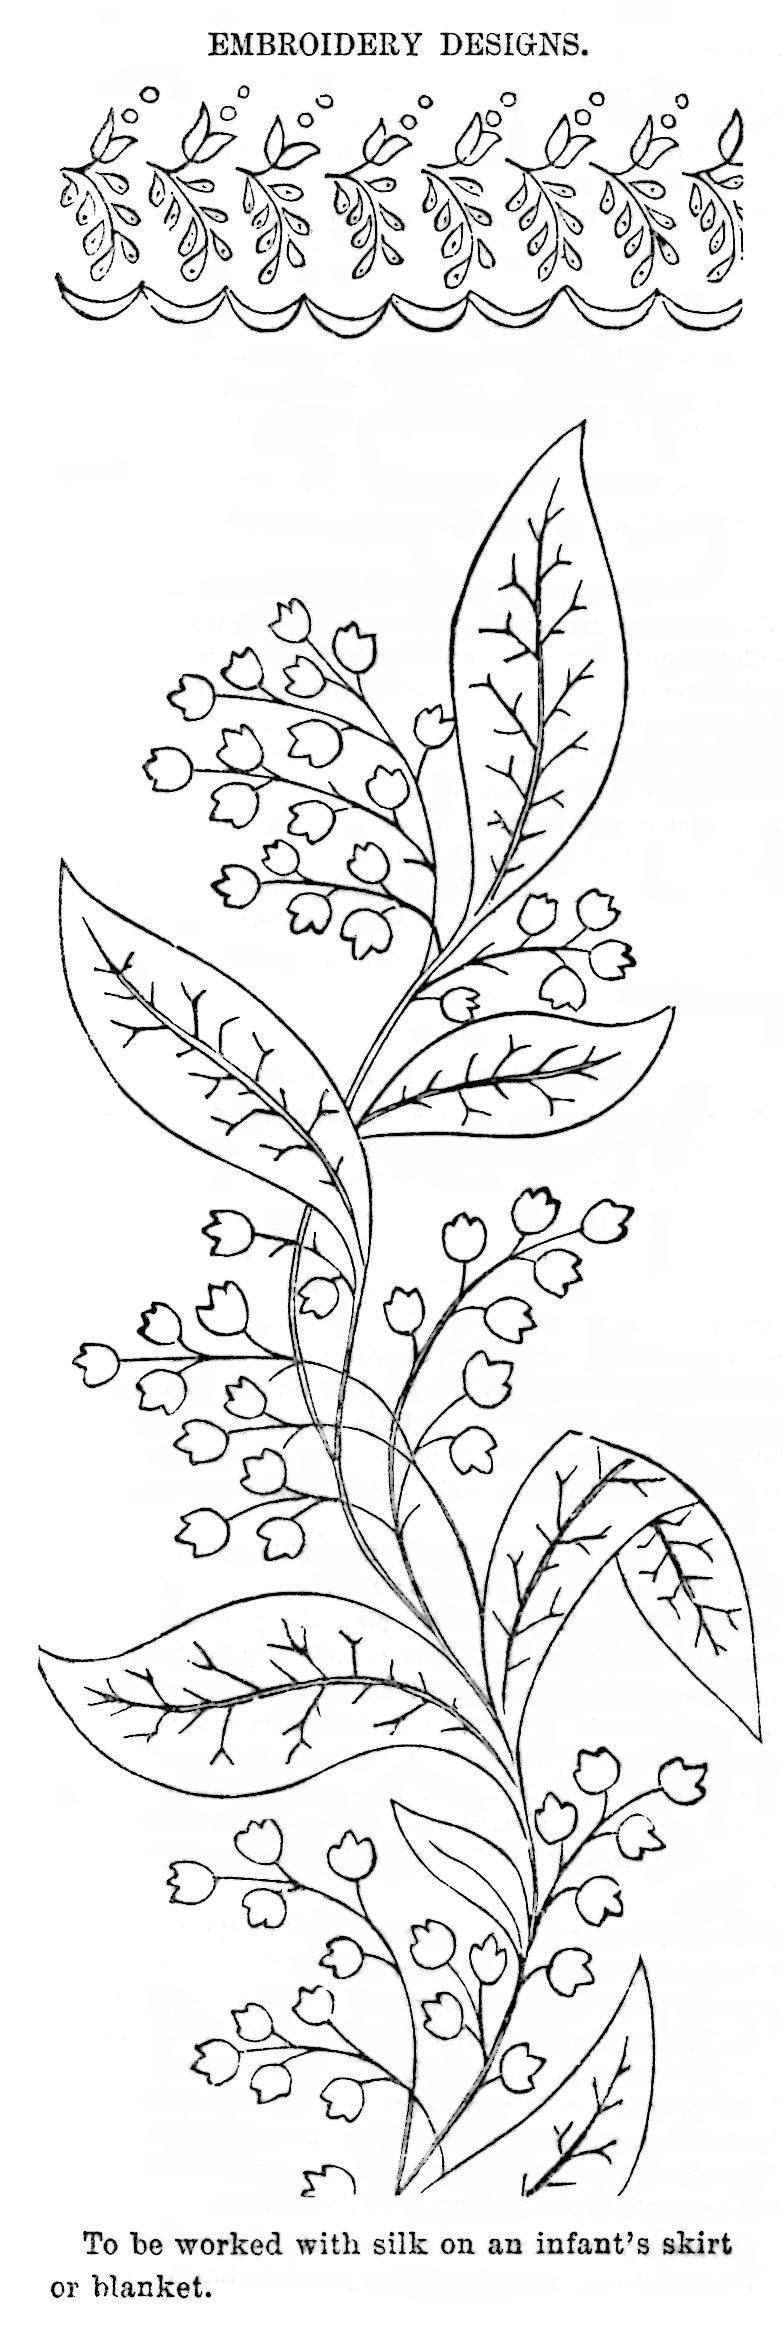 Lily of the Valley Embroidery Pattern - Vintage Crafts and More ...